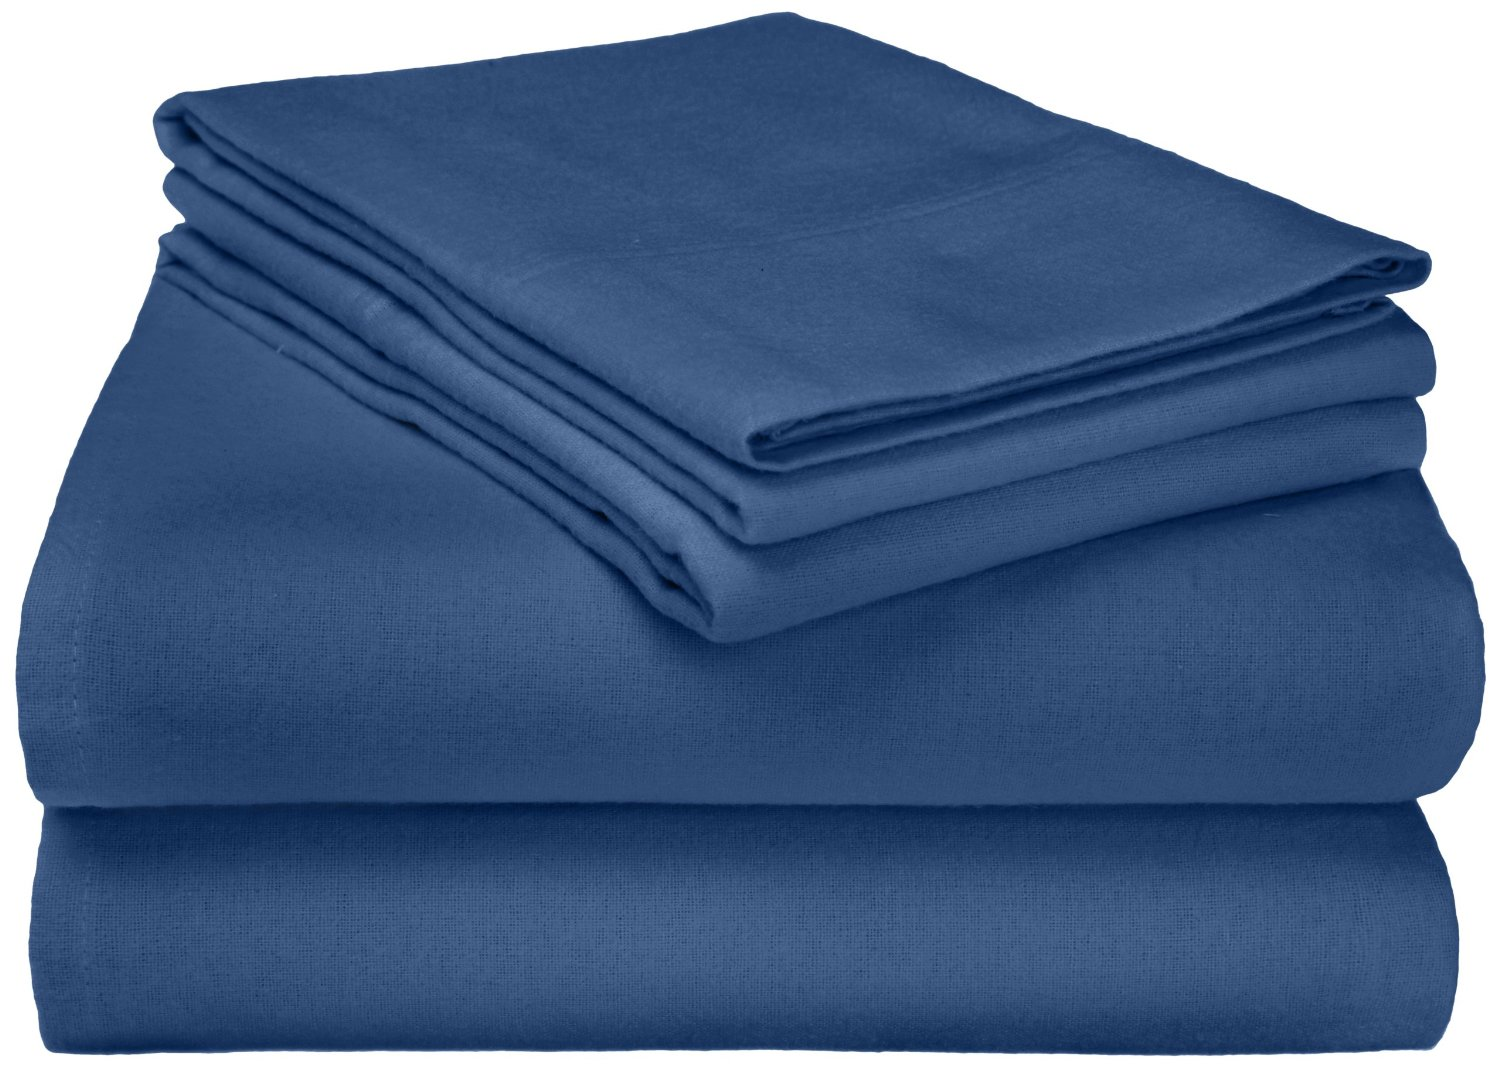 Highest Rated Bed Sheets 100 Cotton Flannel Sheet Set Warm Amp Cozy For Winter 5